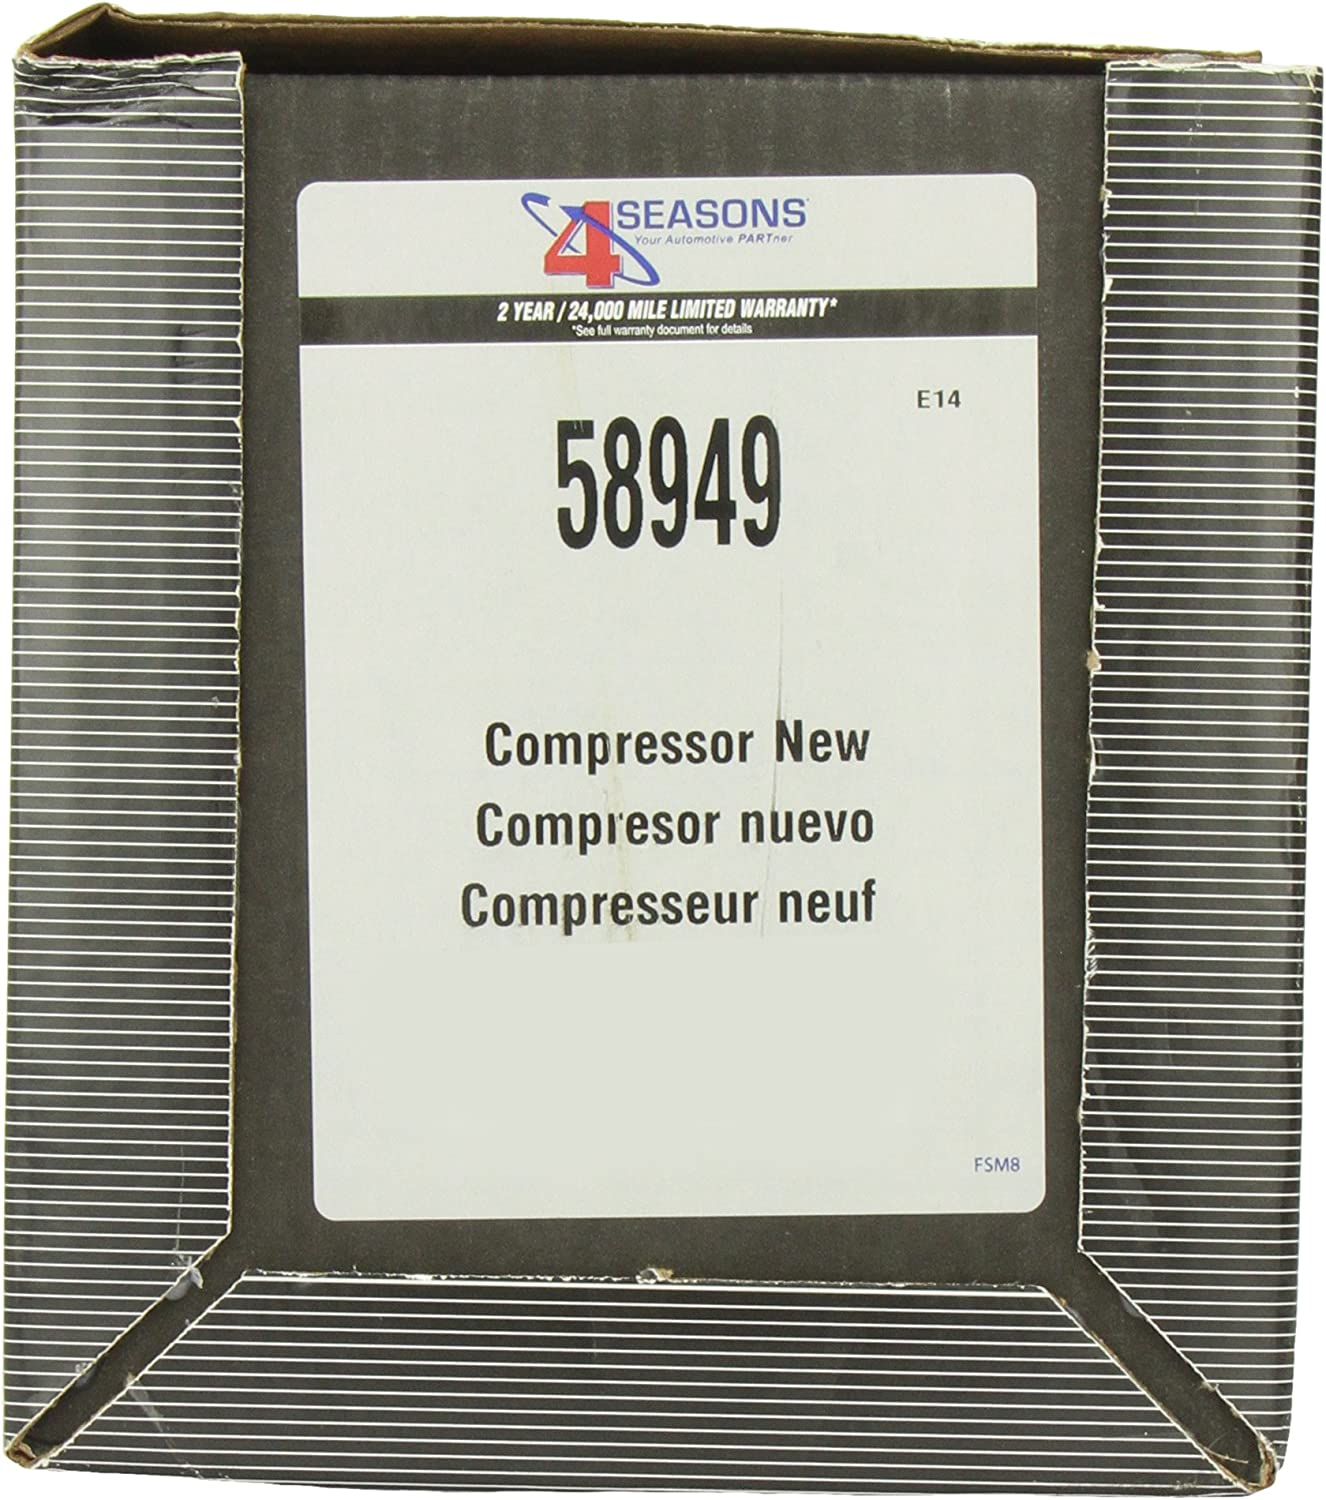 Four Seasons 58949 Compressor